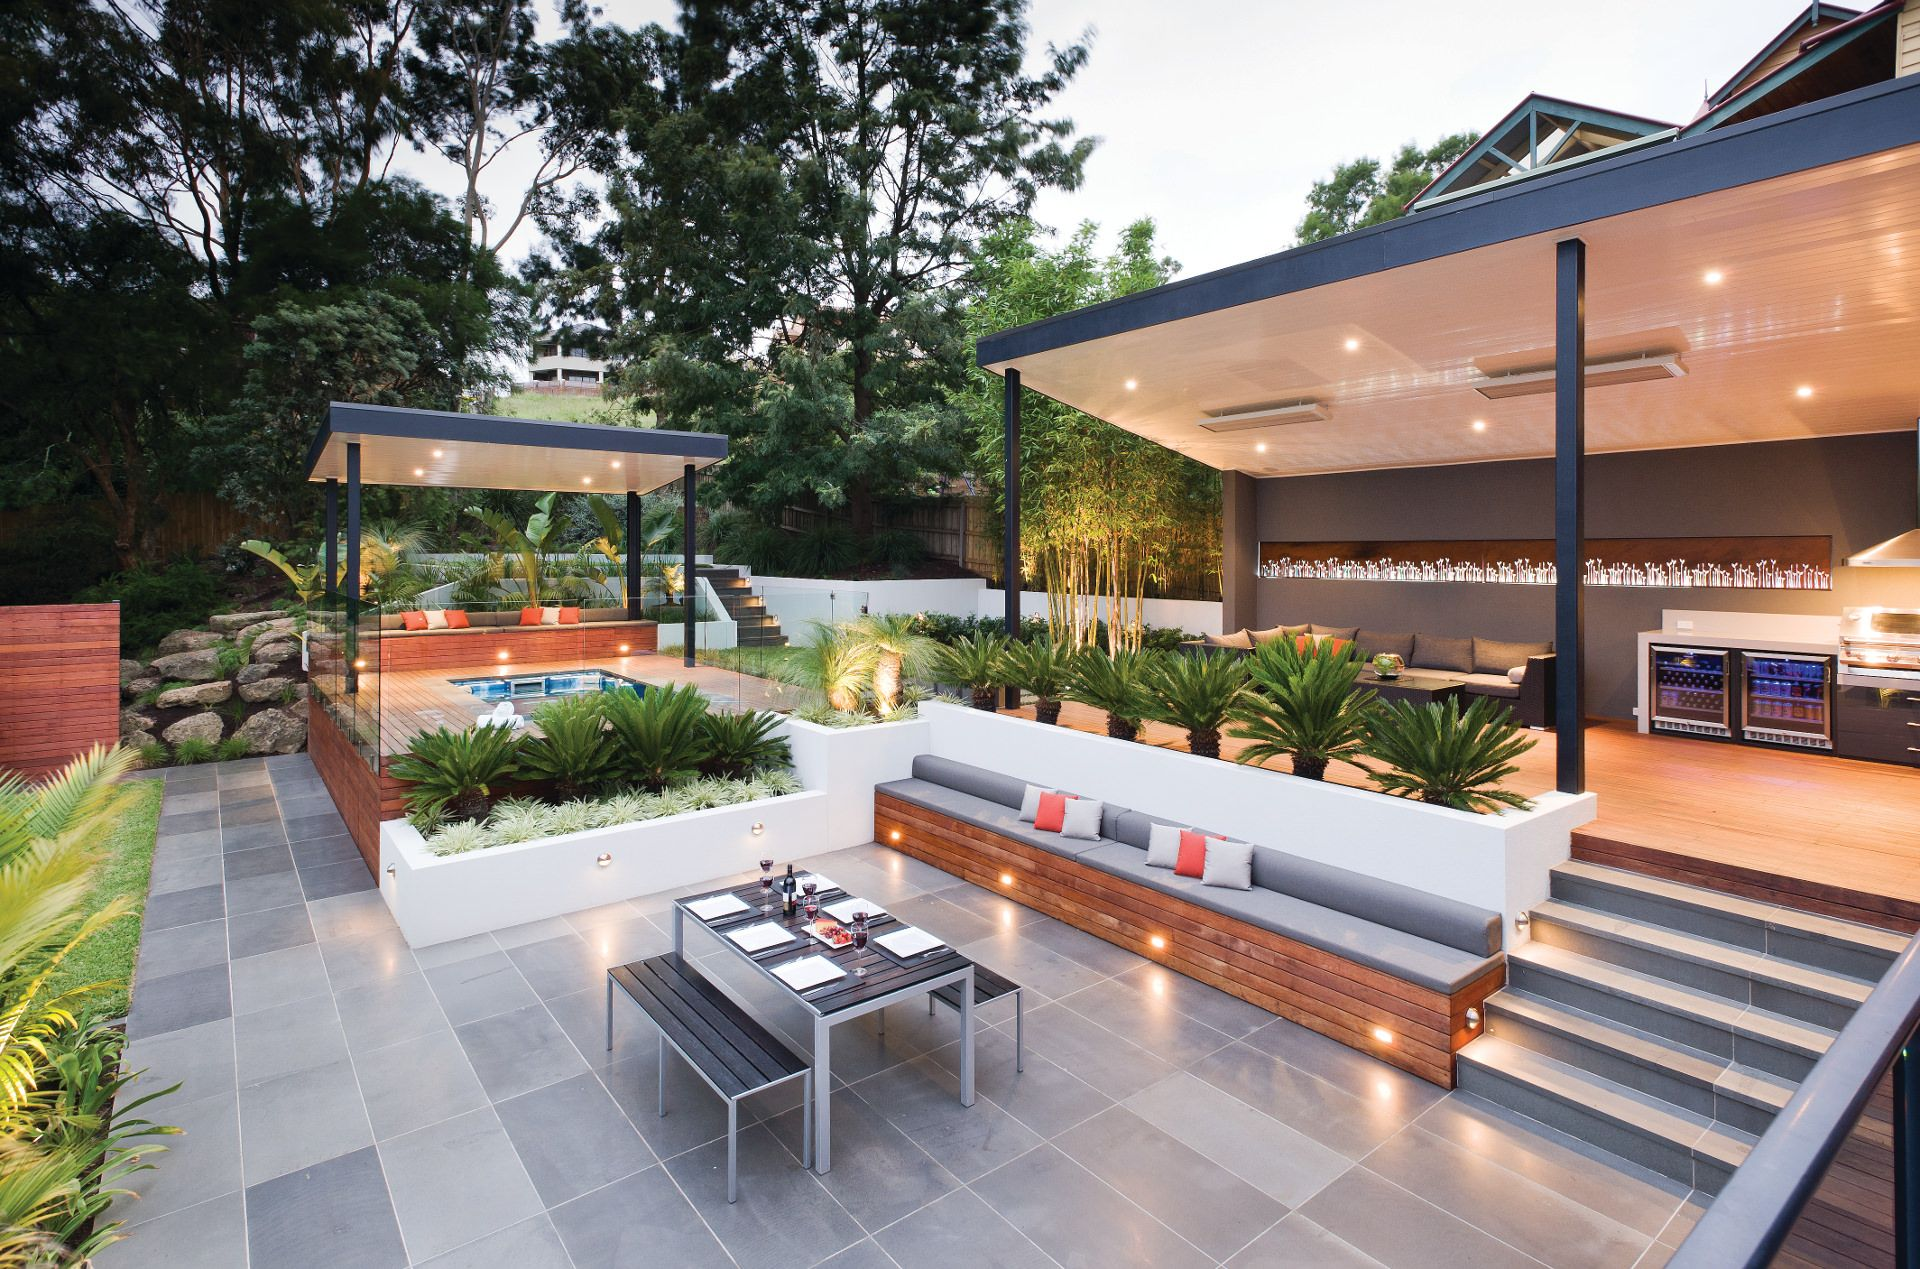 Landscape Design Melbourne Part 2 - Pool Landscape Design | Pools ...